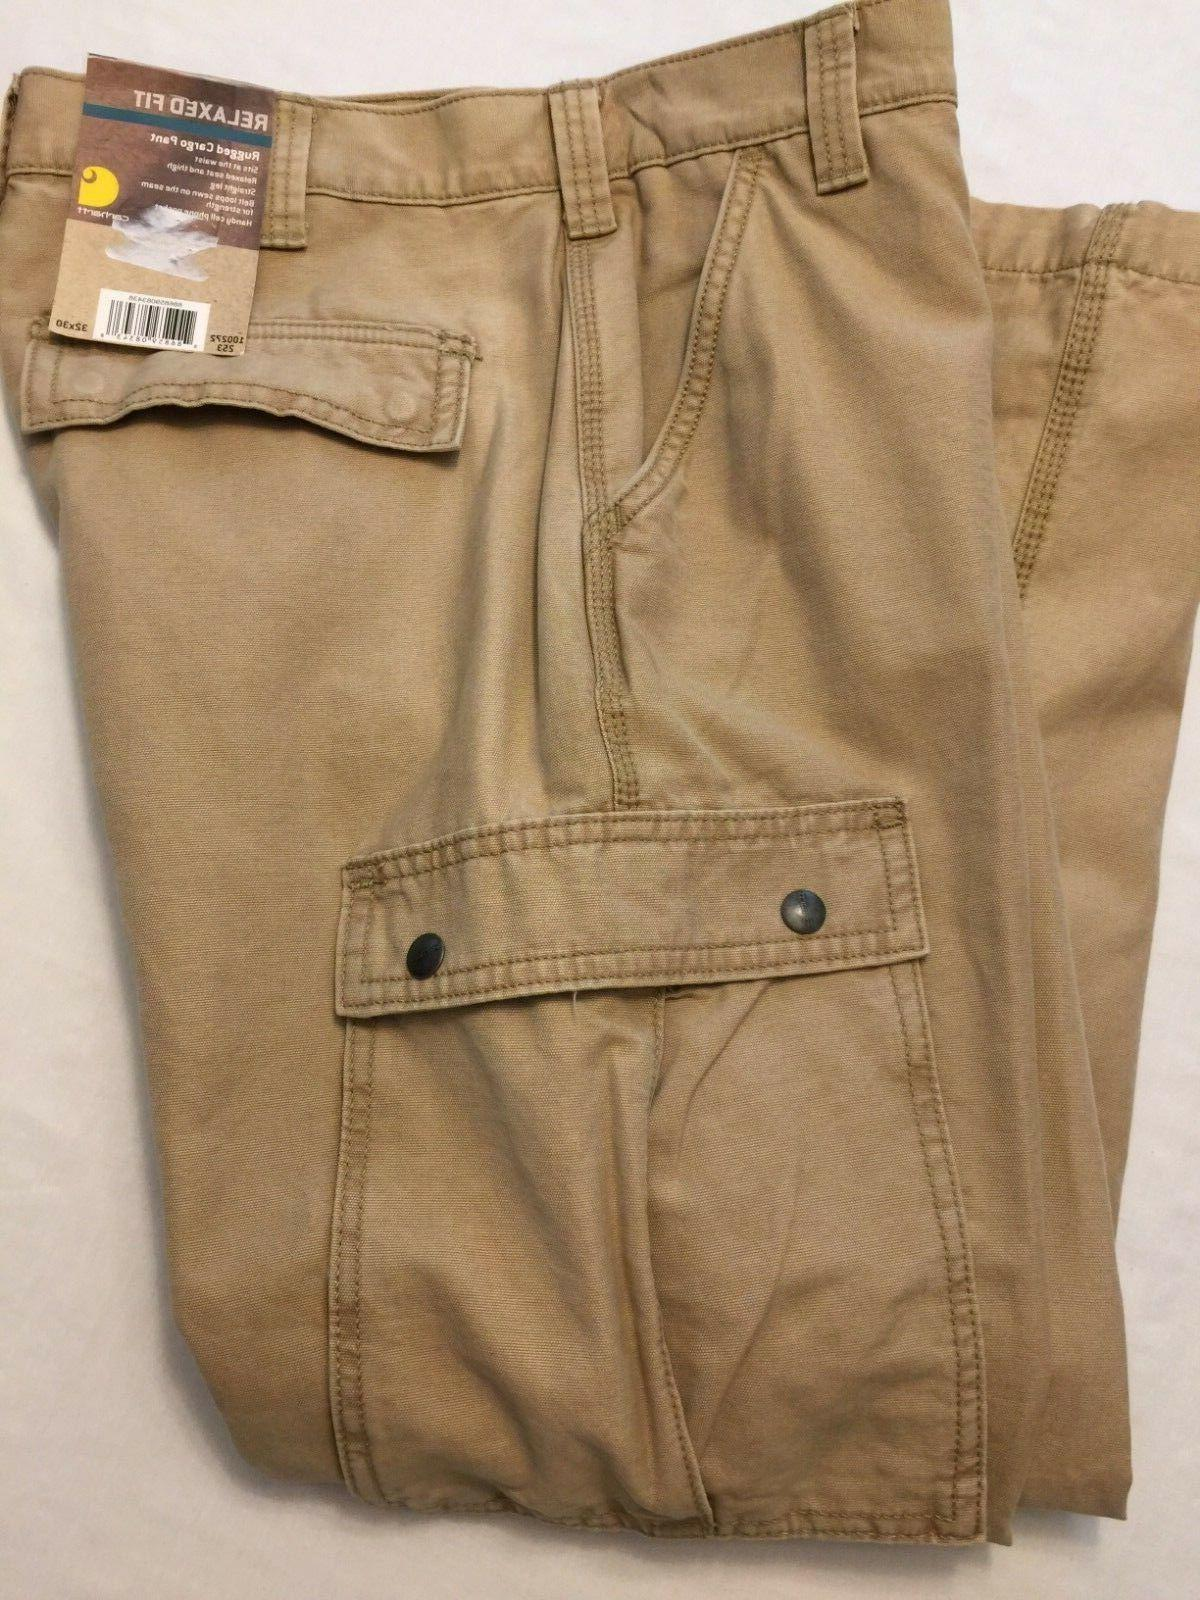 NWT Men's CARHARTT Rugged Work Pants 100272 253 039 Cargo Re